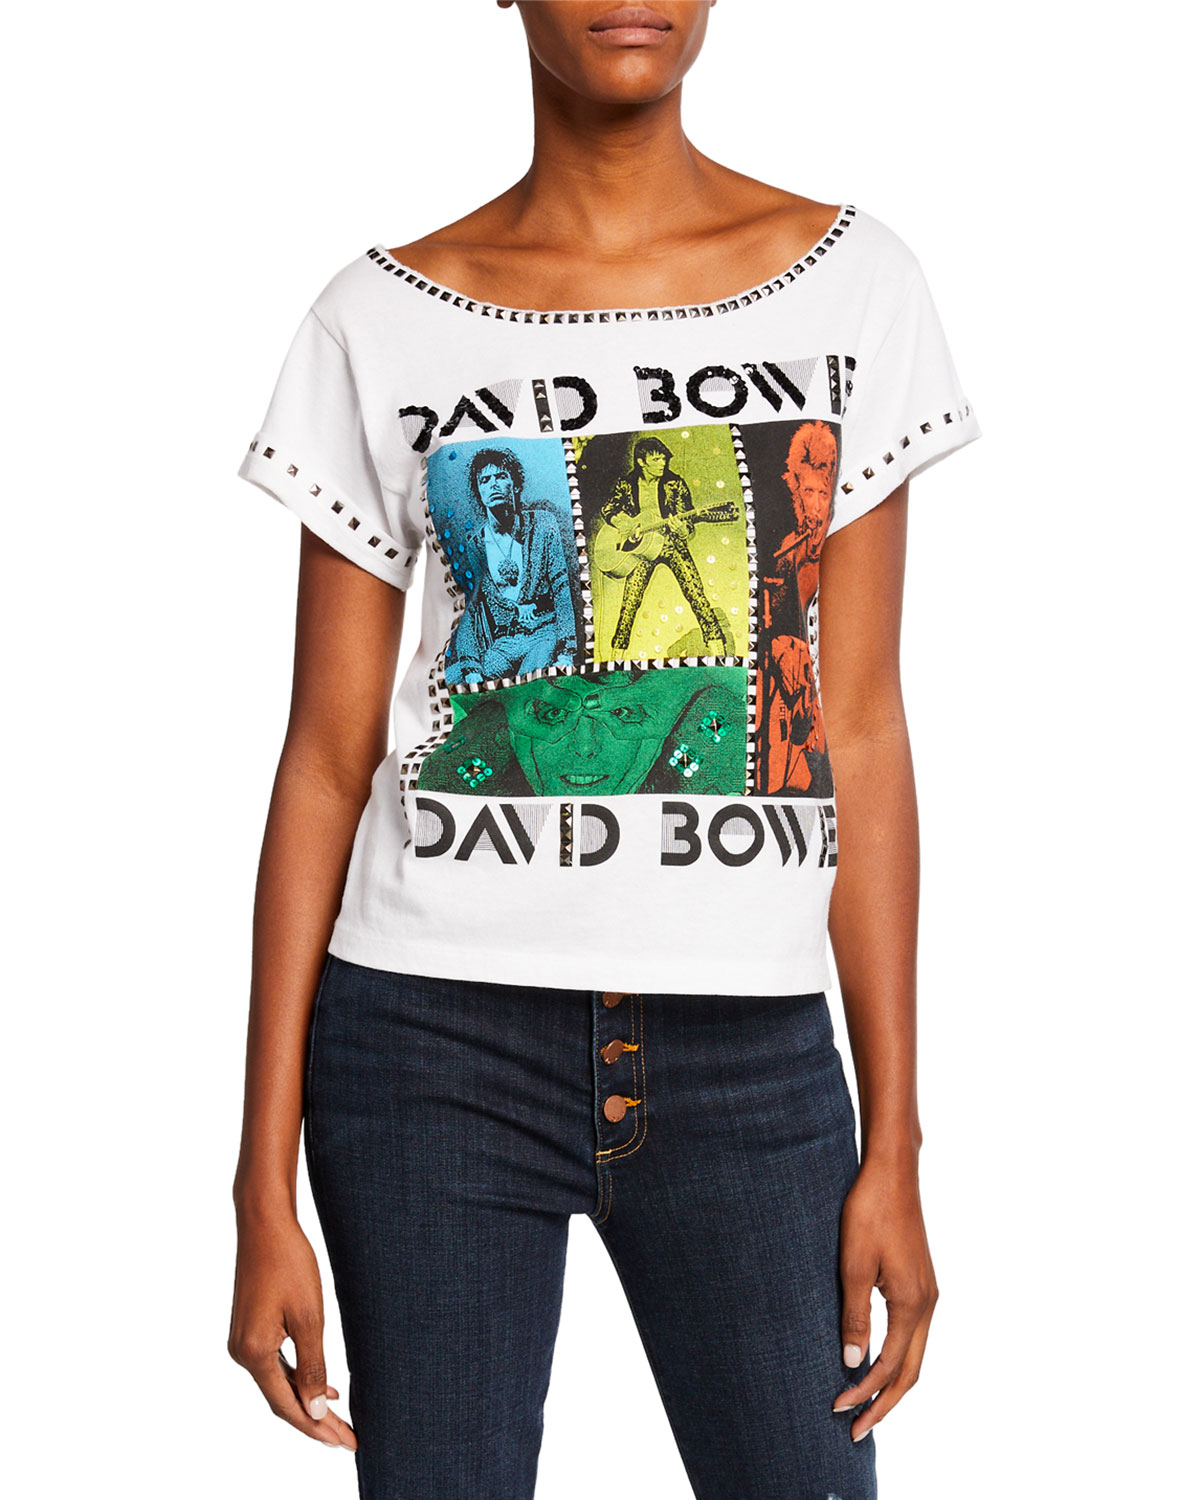 ALICE + OLIVIA JEANS Mikey David Bowie Embellished Wide-Neck Tee With Studs in Multi